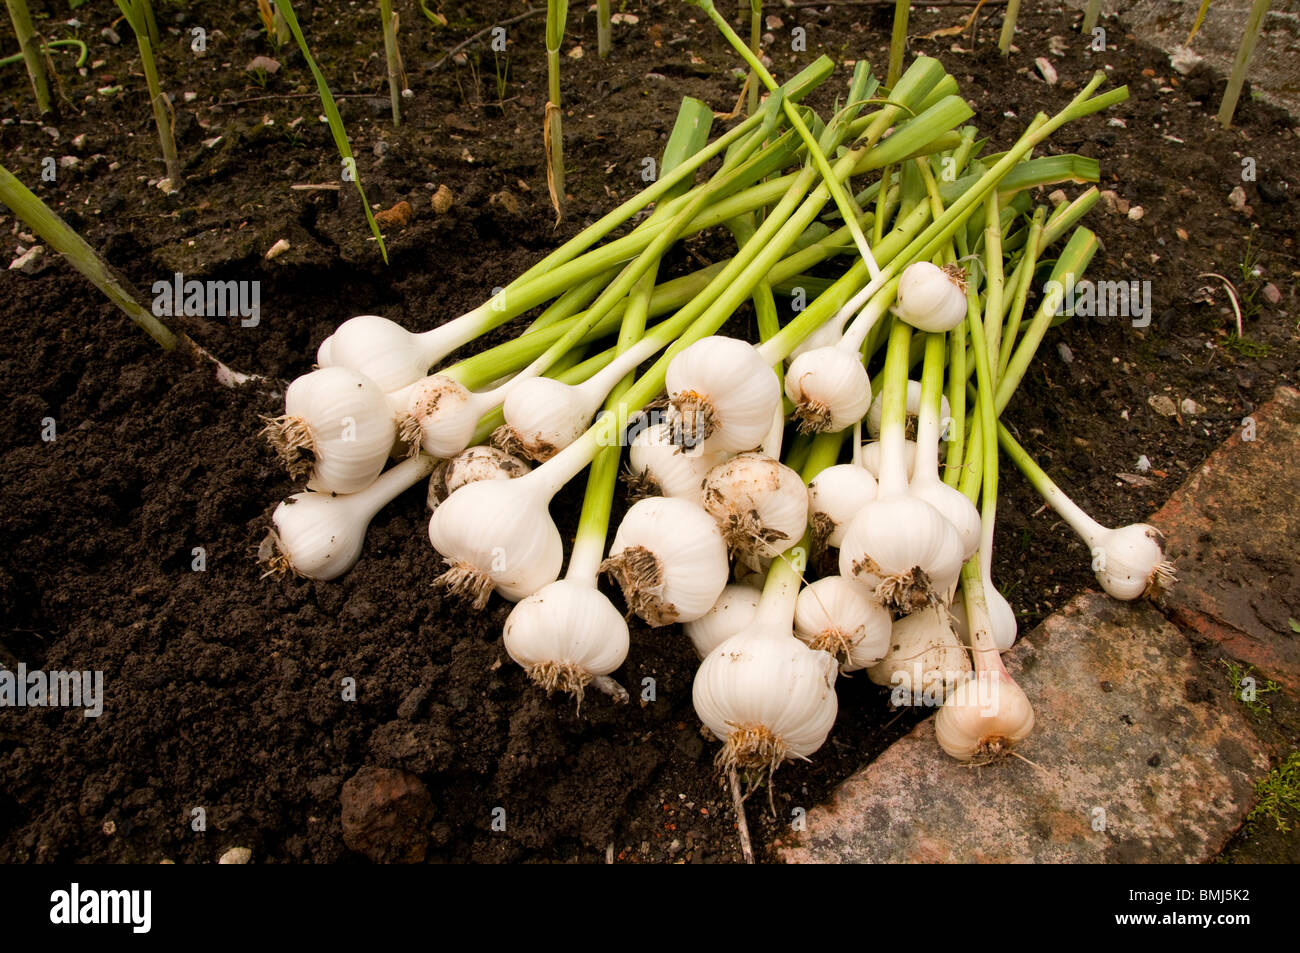 Freshly picked garlic from the garden Stock Photo